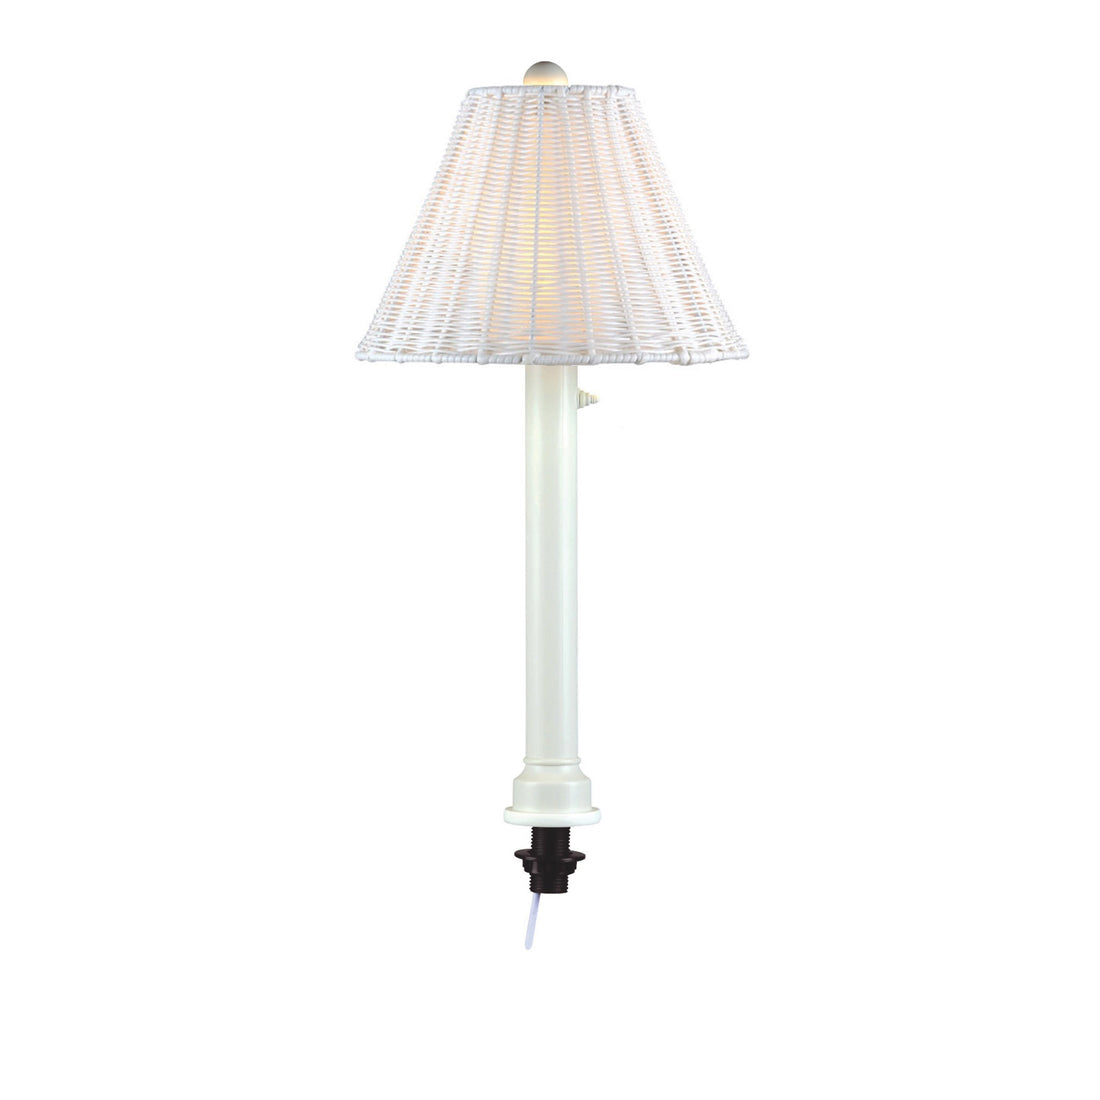 "Umbrella Table Lamp 10771 with 2"" white tube body and white all-weather wicker shade"